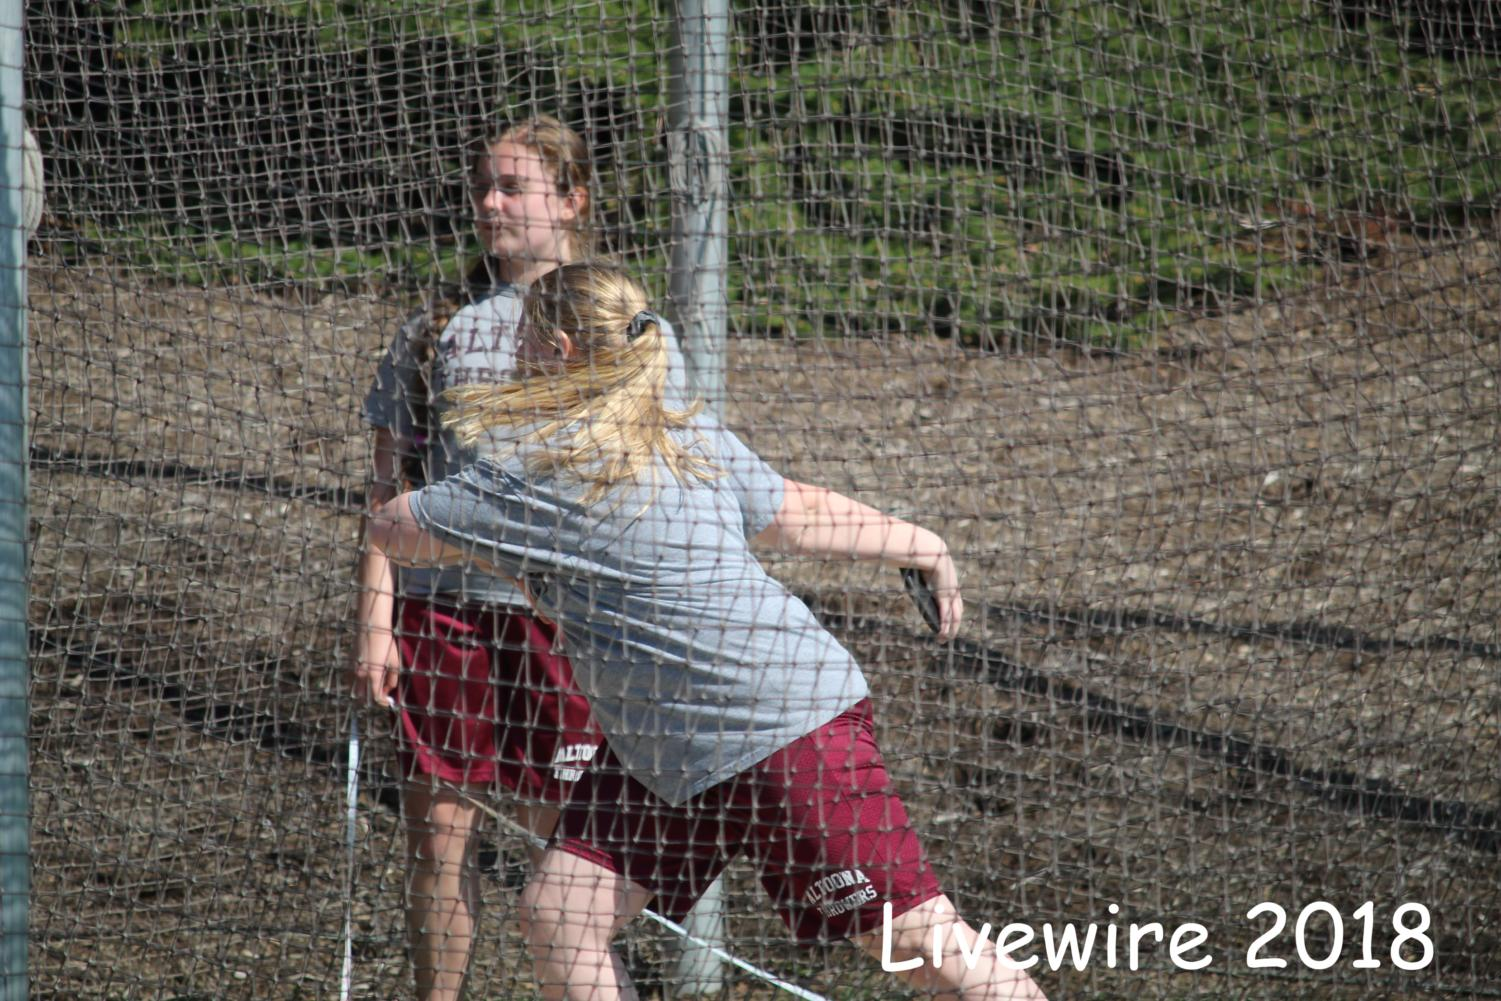 I+can%21+Rachel+Lucas+gets+ready+to+throw+the+discus.+Lucas+also+threw+the+shot+put.+